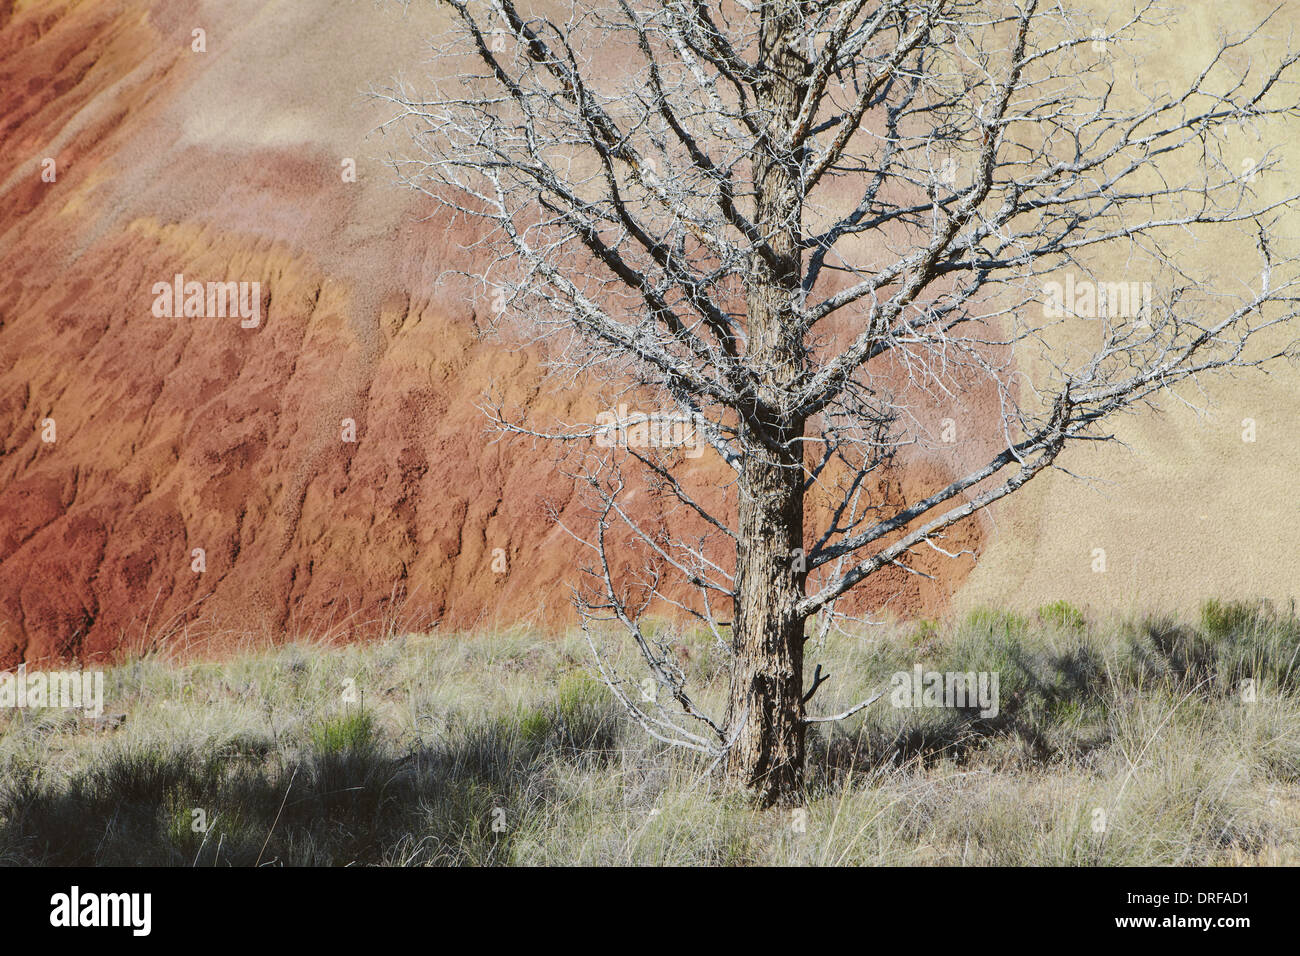 Oregon USA Bare tree among volcanic geological landscape - Stock Image